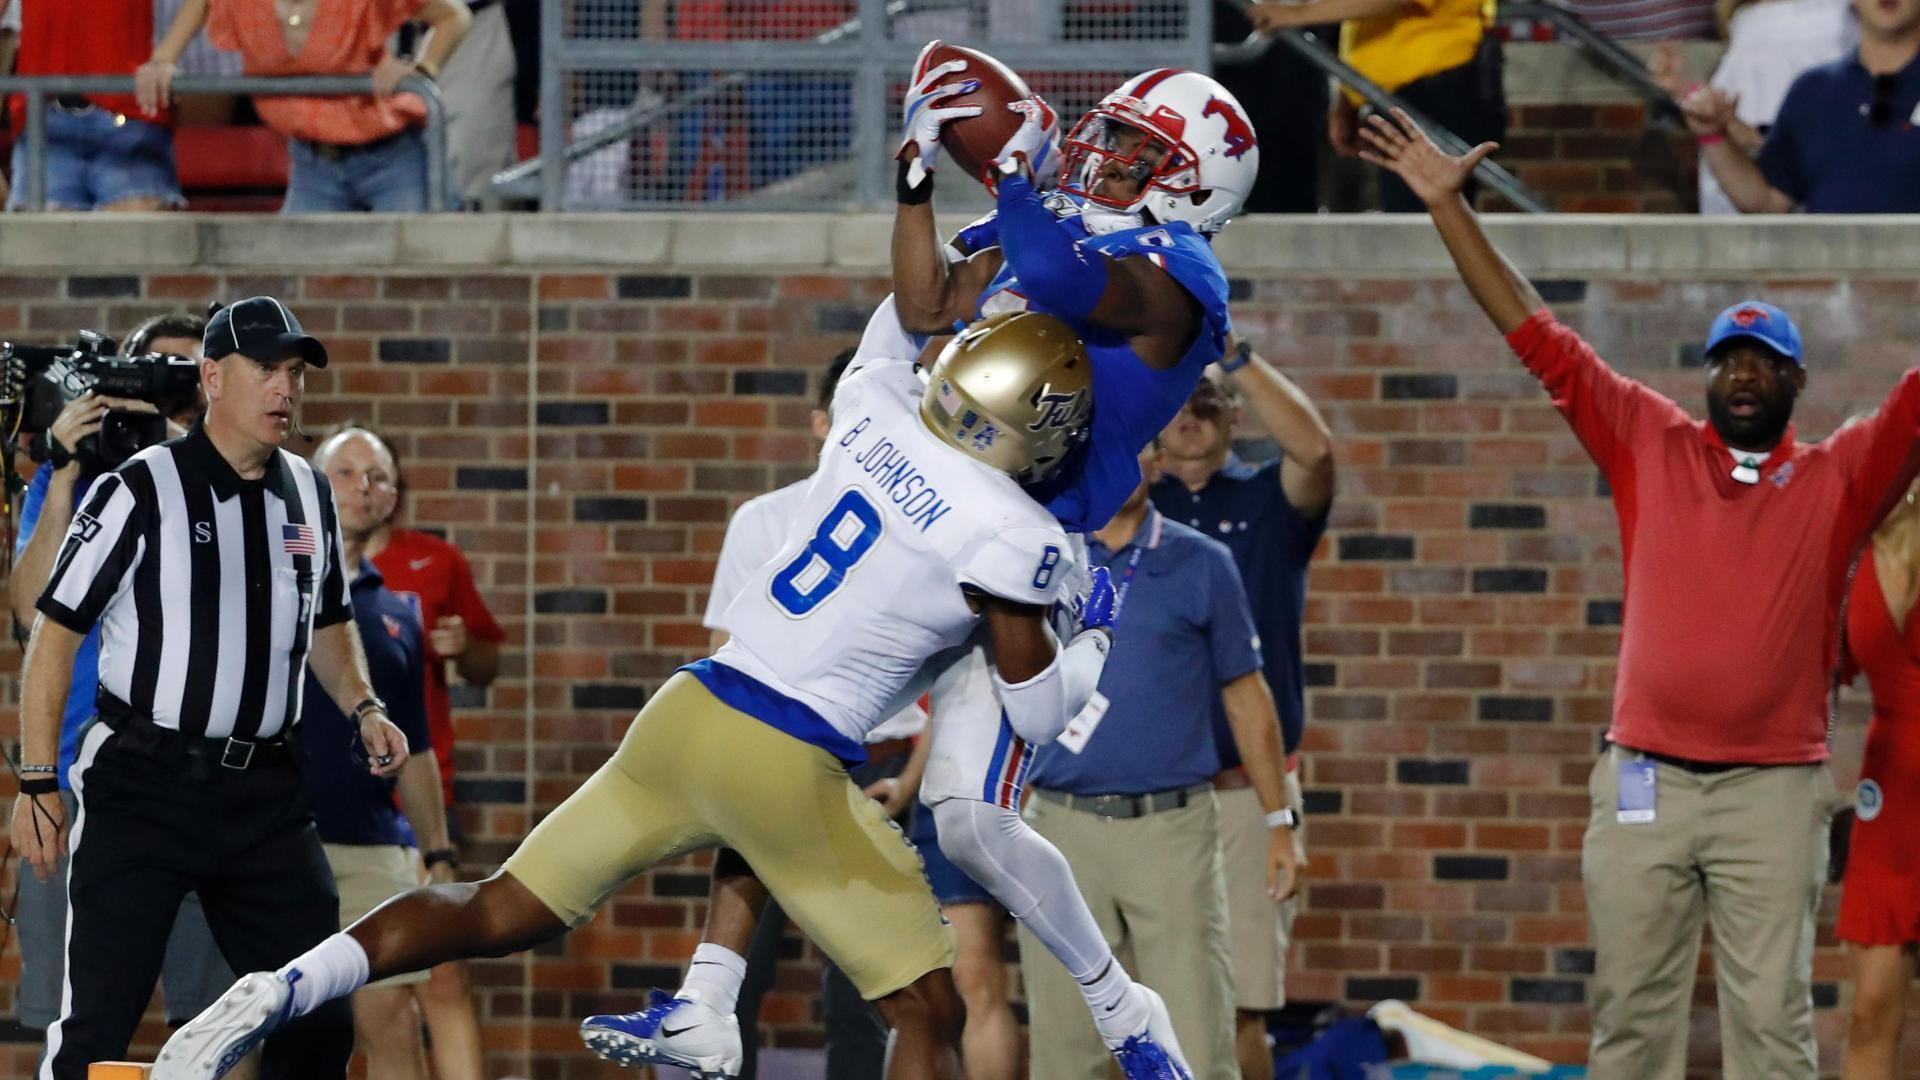 Proche hauls in SMU's winning TD grab in 3OT